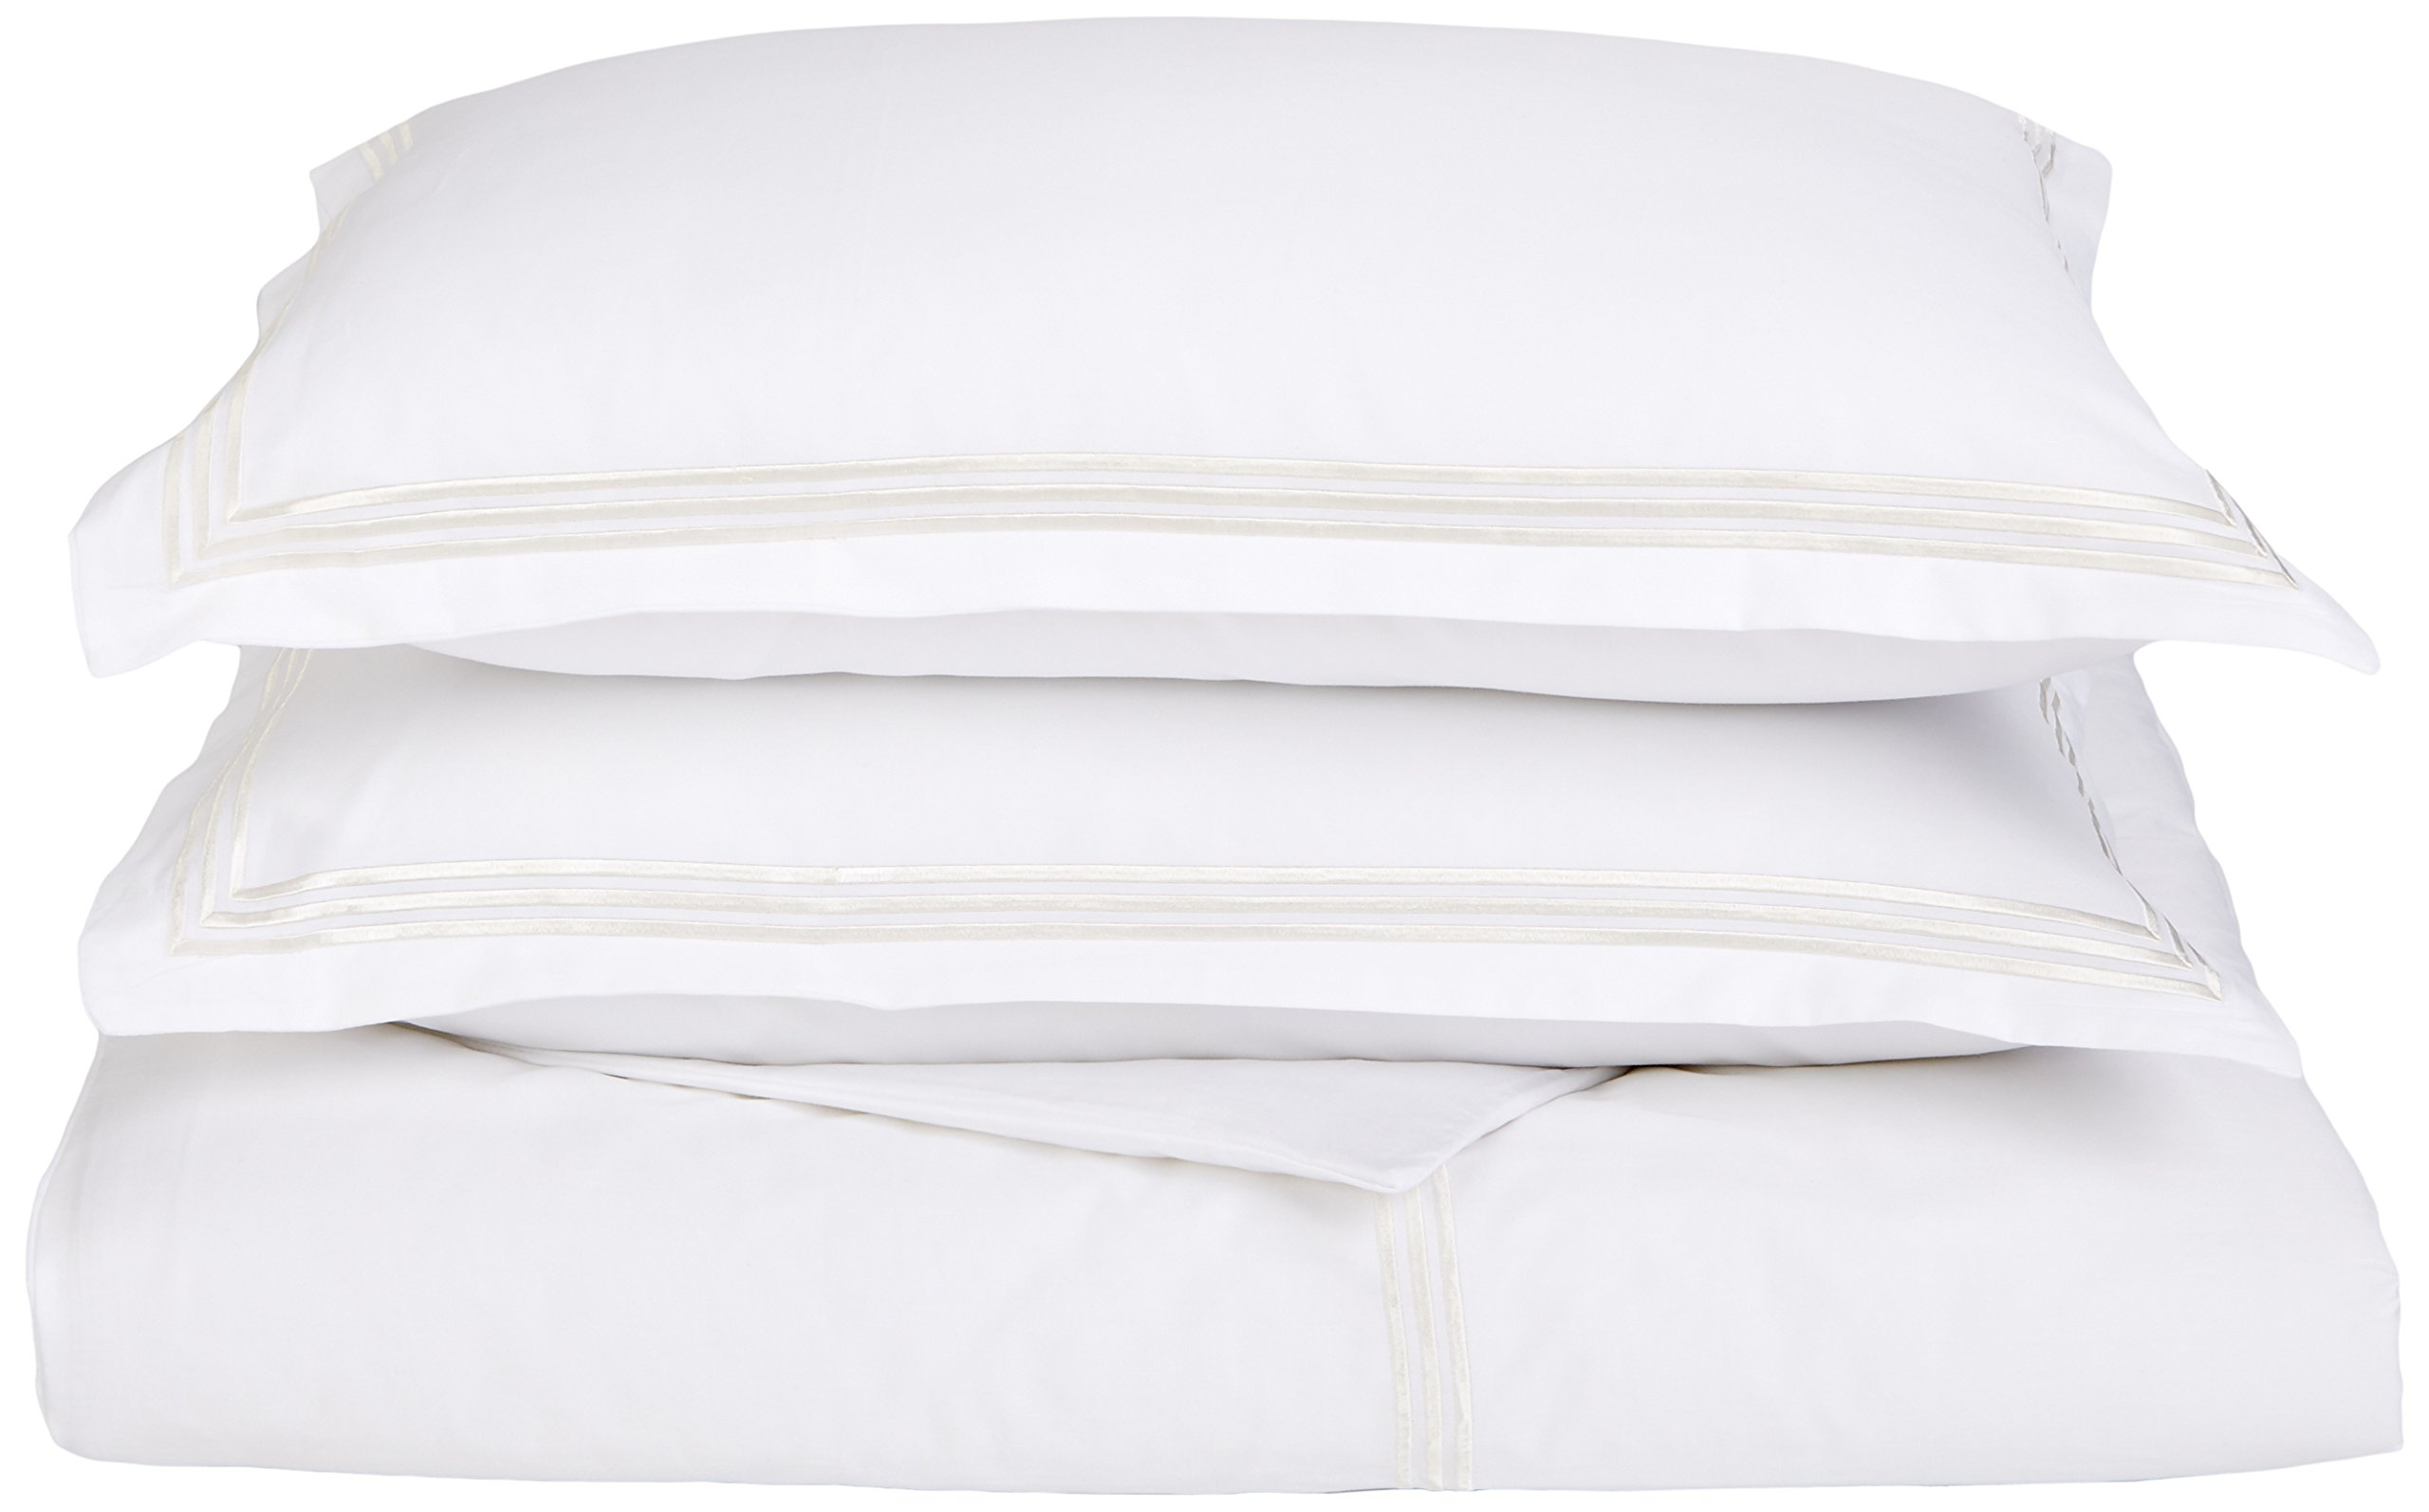 Echelon Home Three Line Hotel Collection Duvet Cover Set, King, Ivory